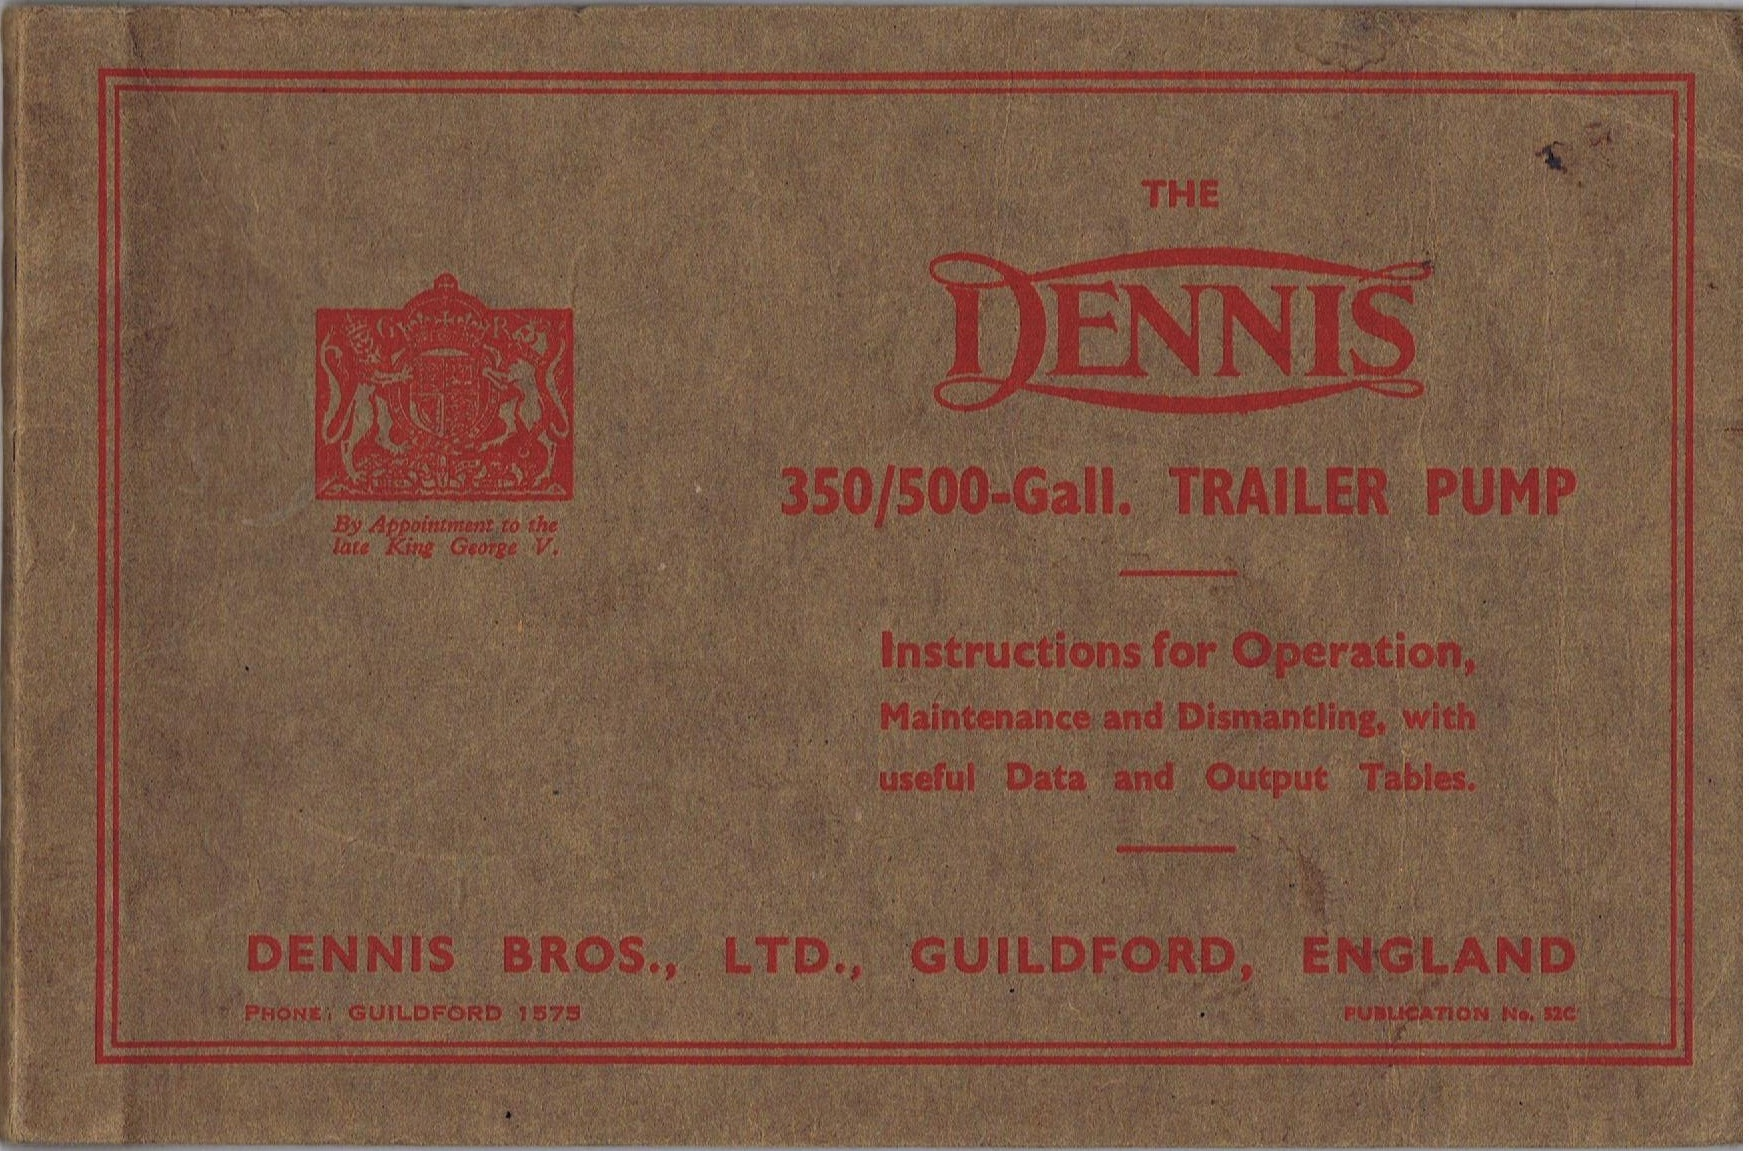 Uncategorized well pump house covers austin locking sump lid - Scanned From Dennis Manual